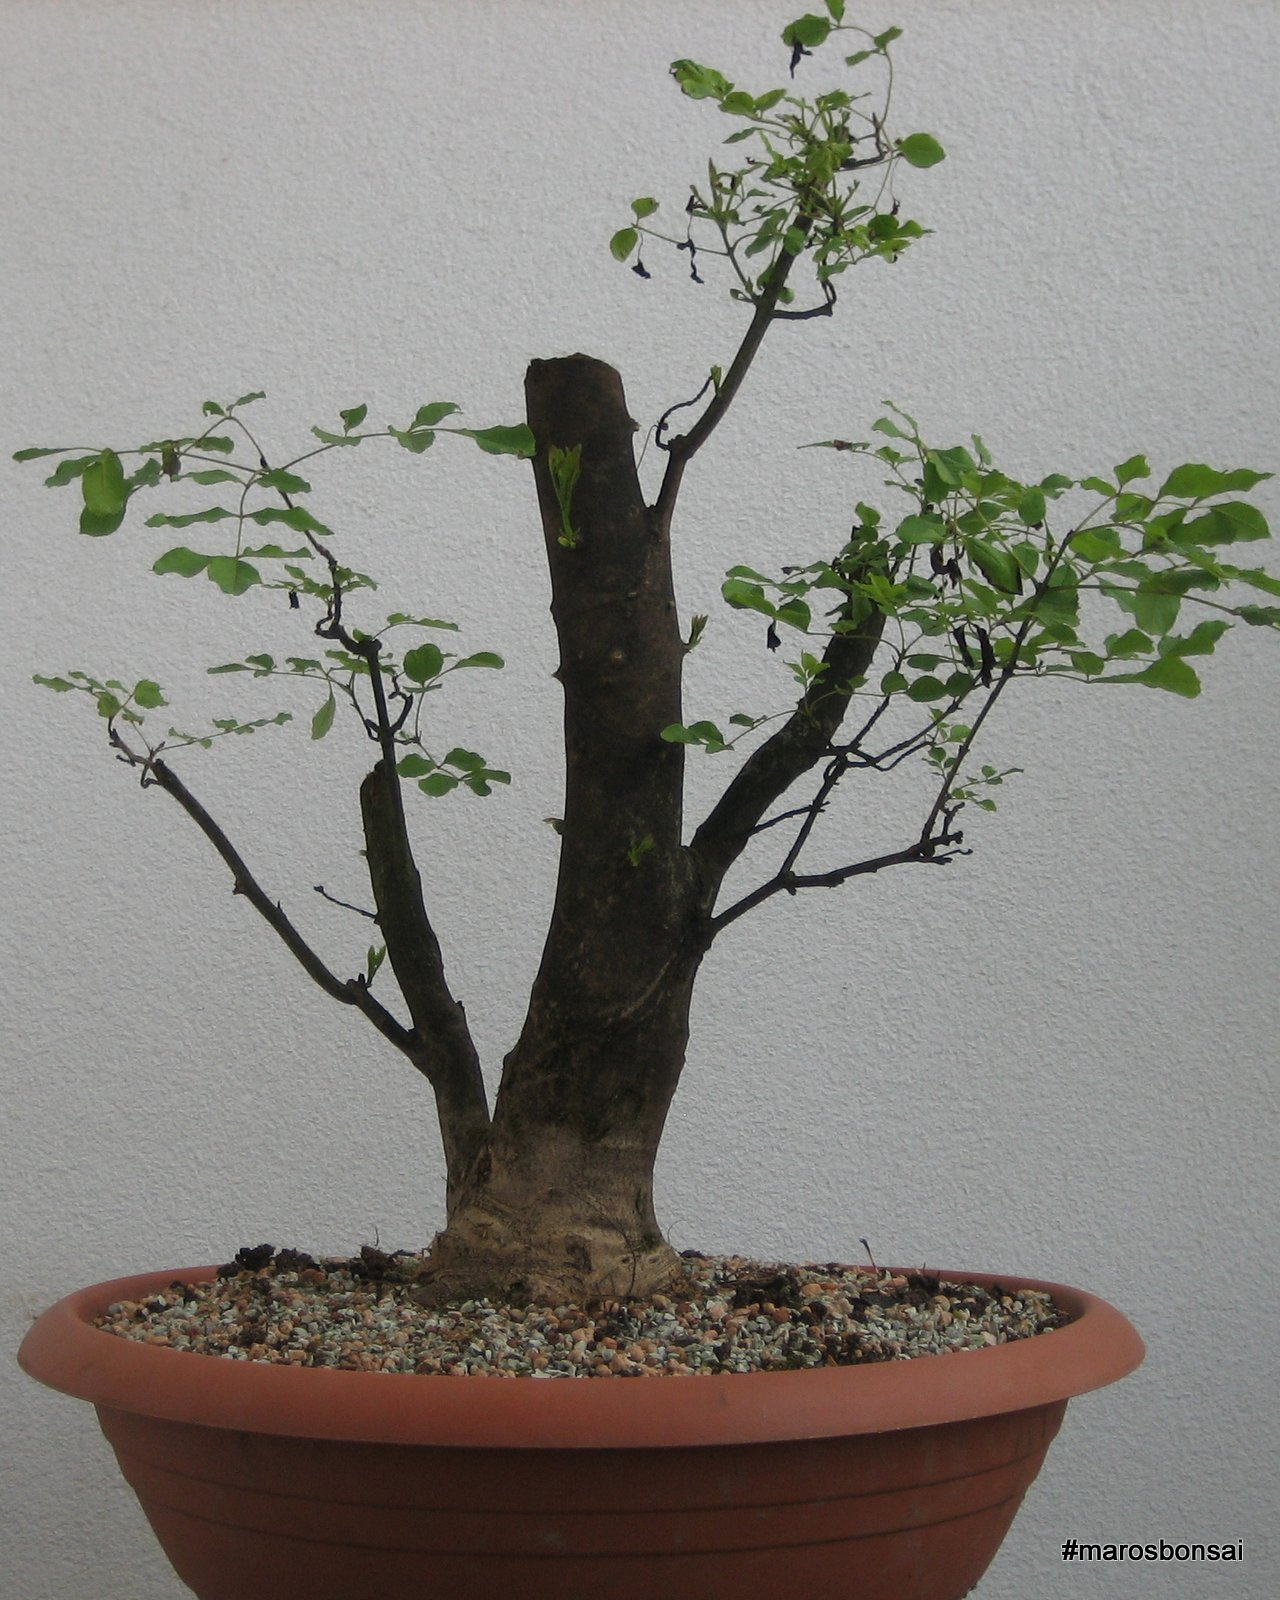 Maros Bonsai Blog August 2015